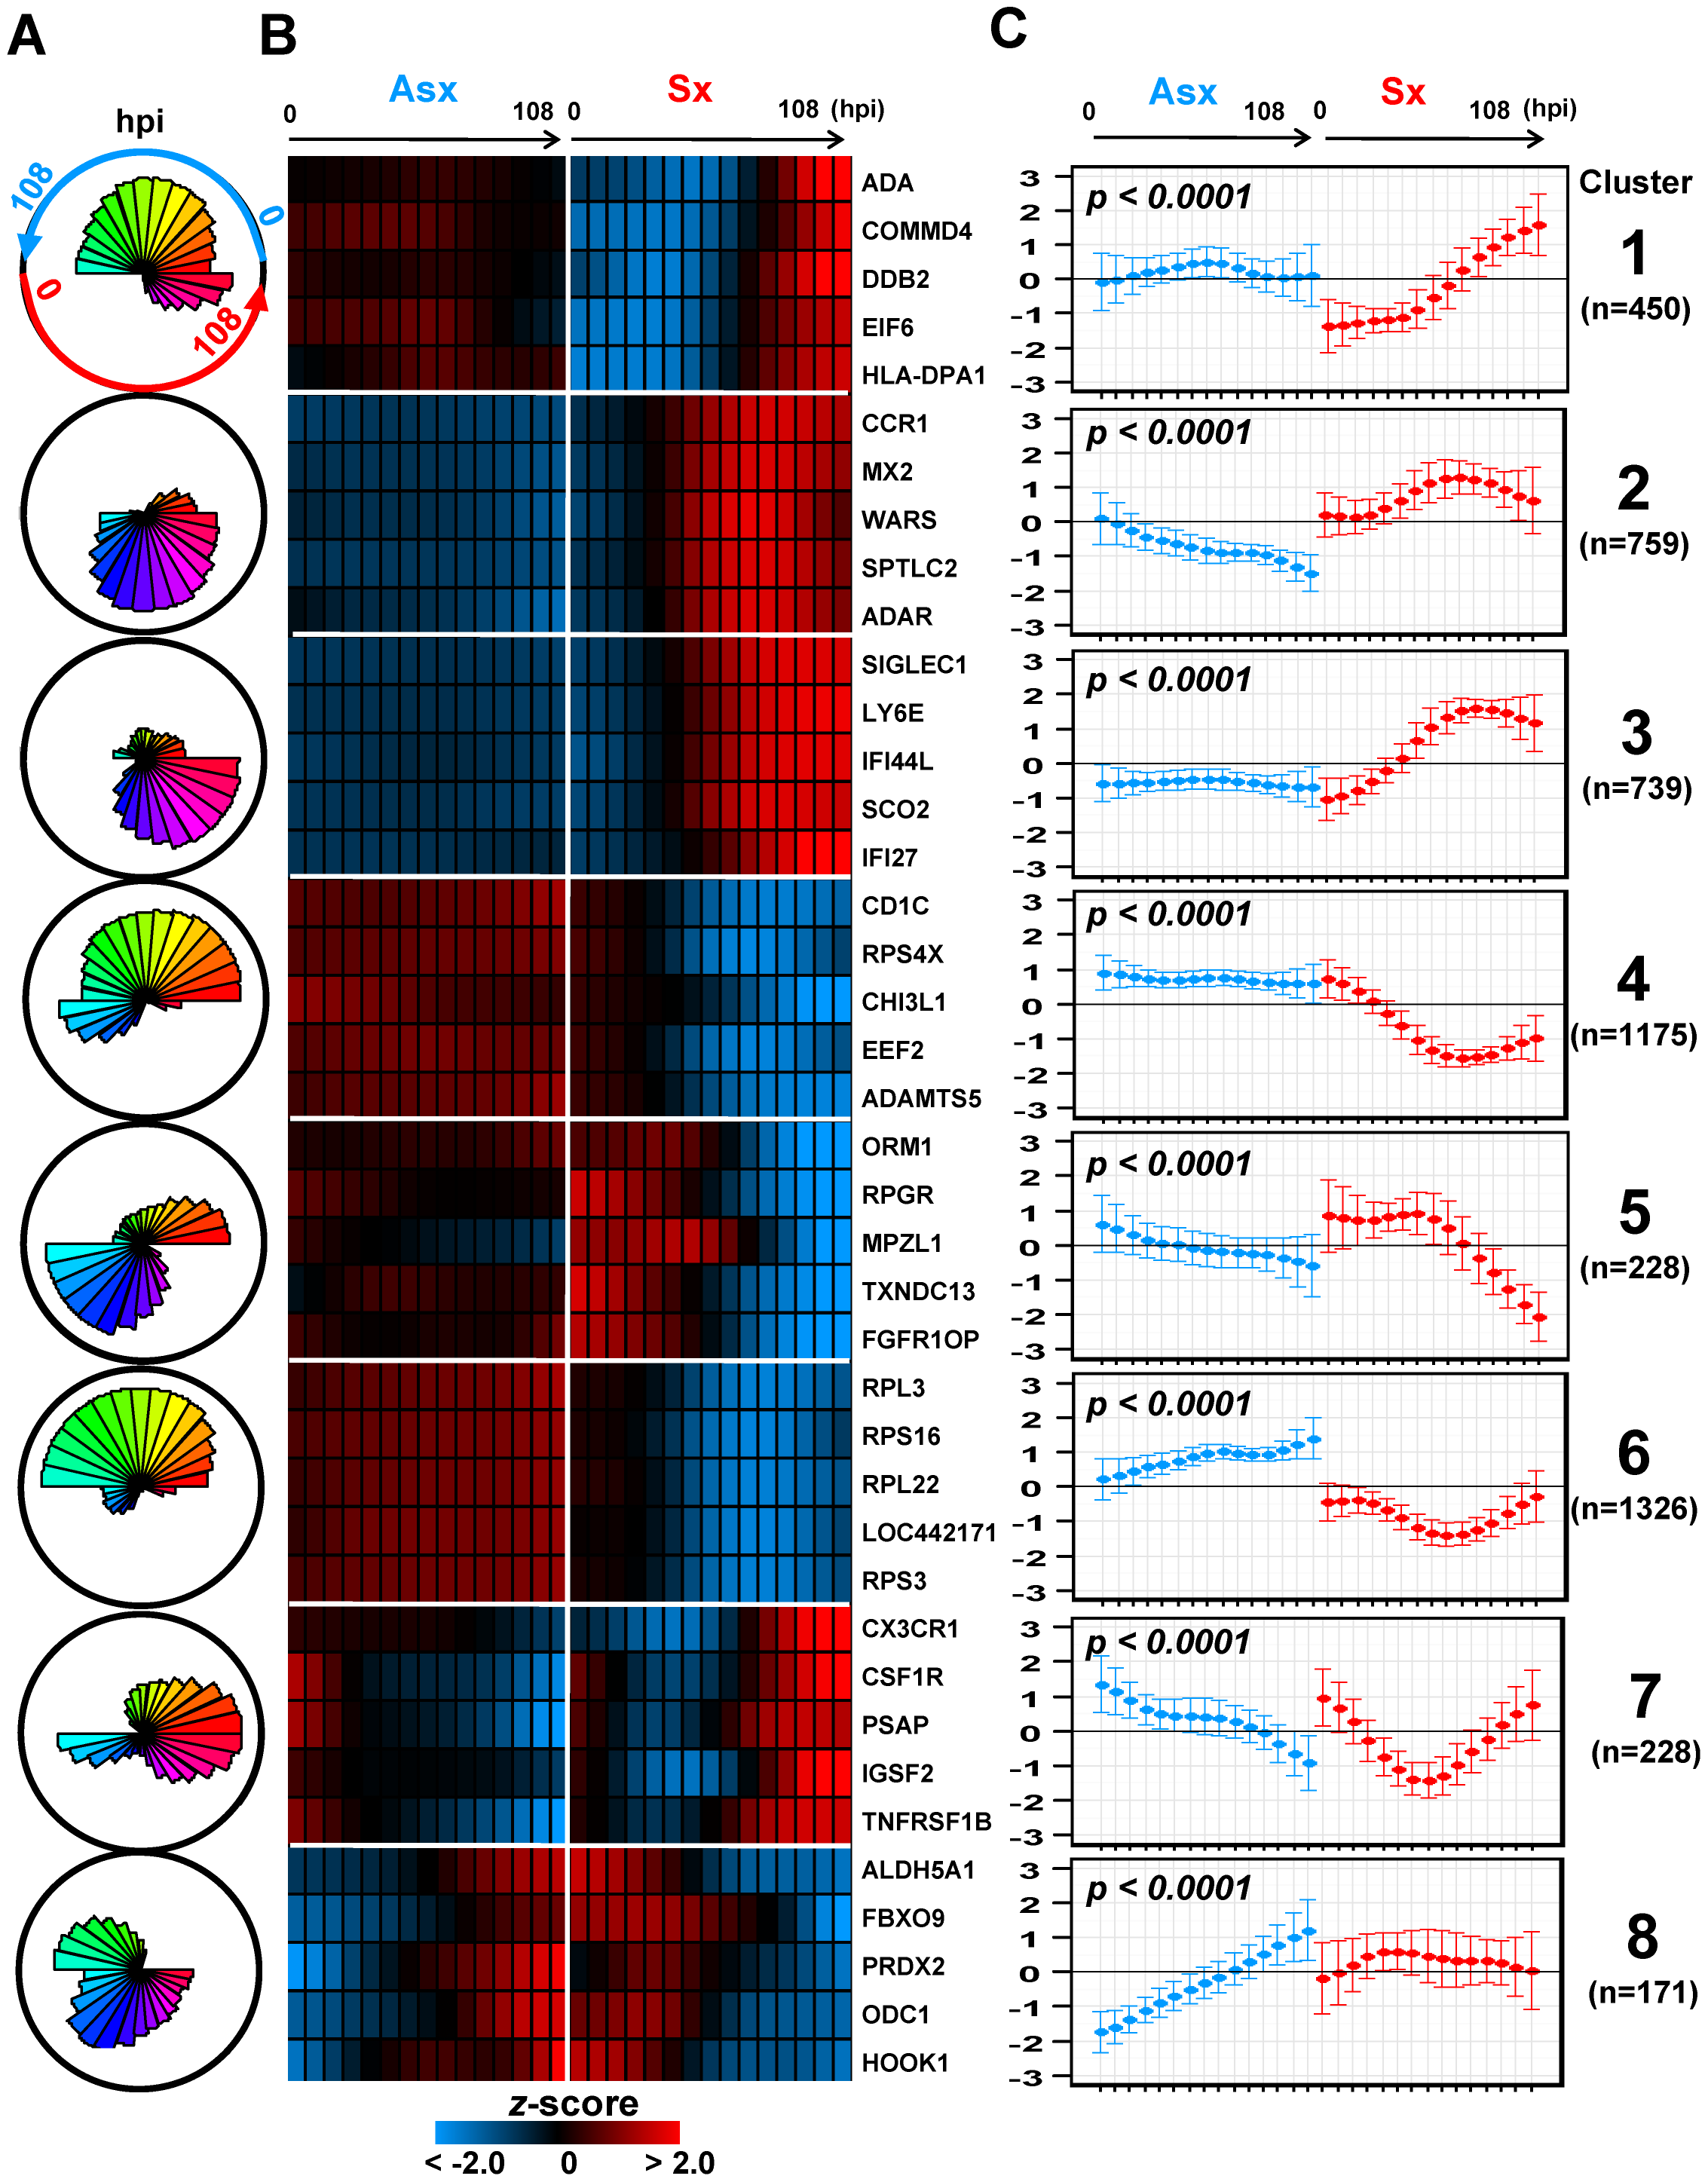 Self-organizing map clusters show distinct transcriptional dynamics in Influenza H3N2/Wisconsin virus challenge study.